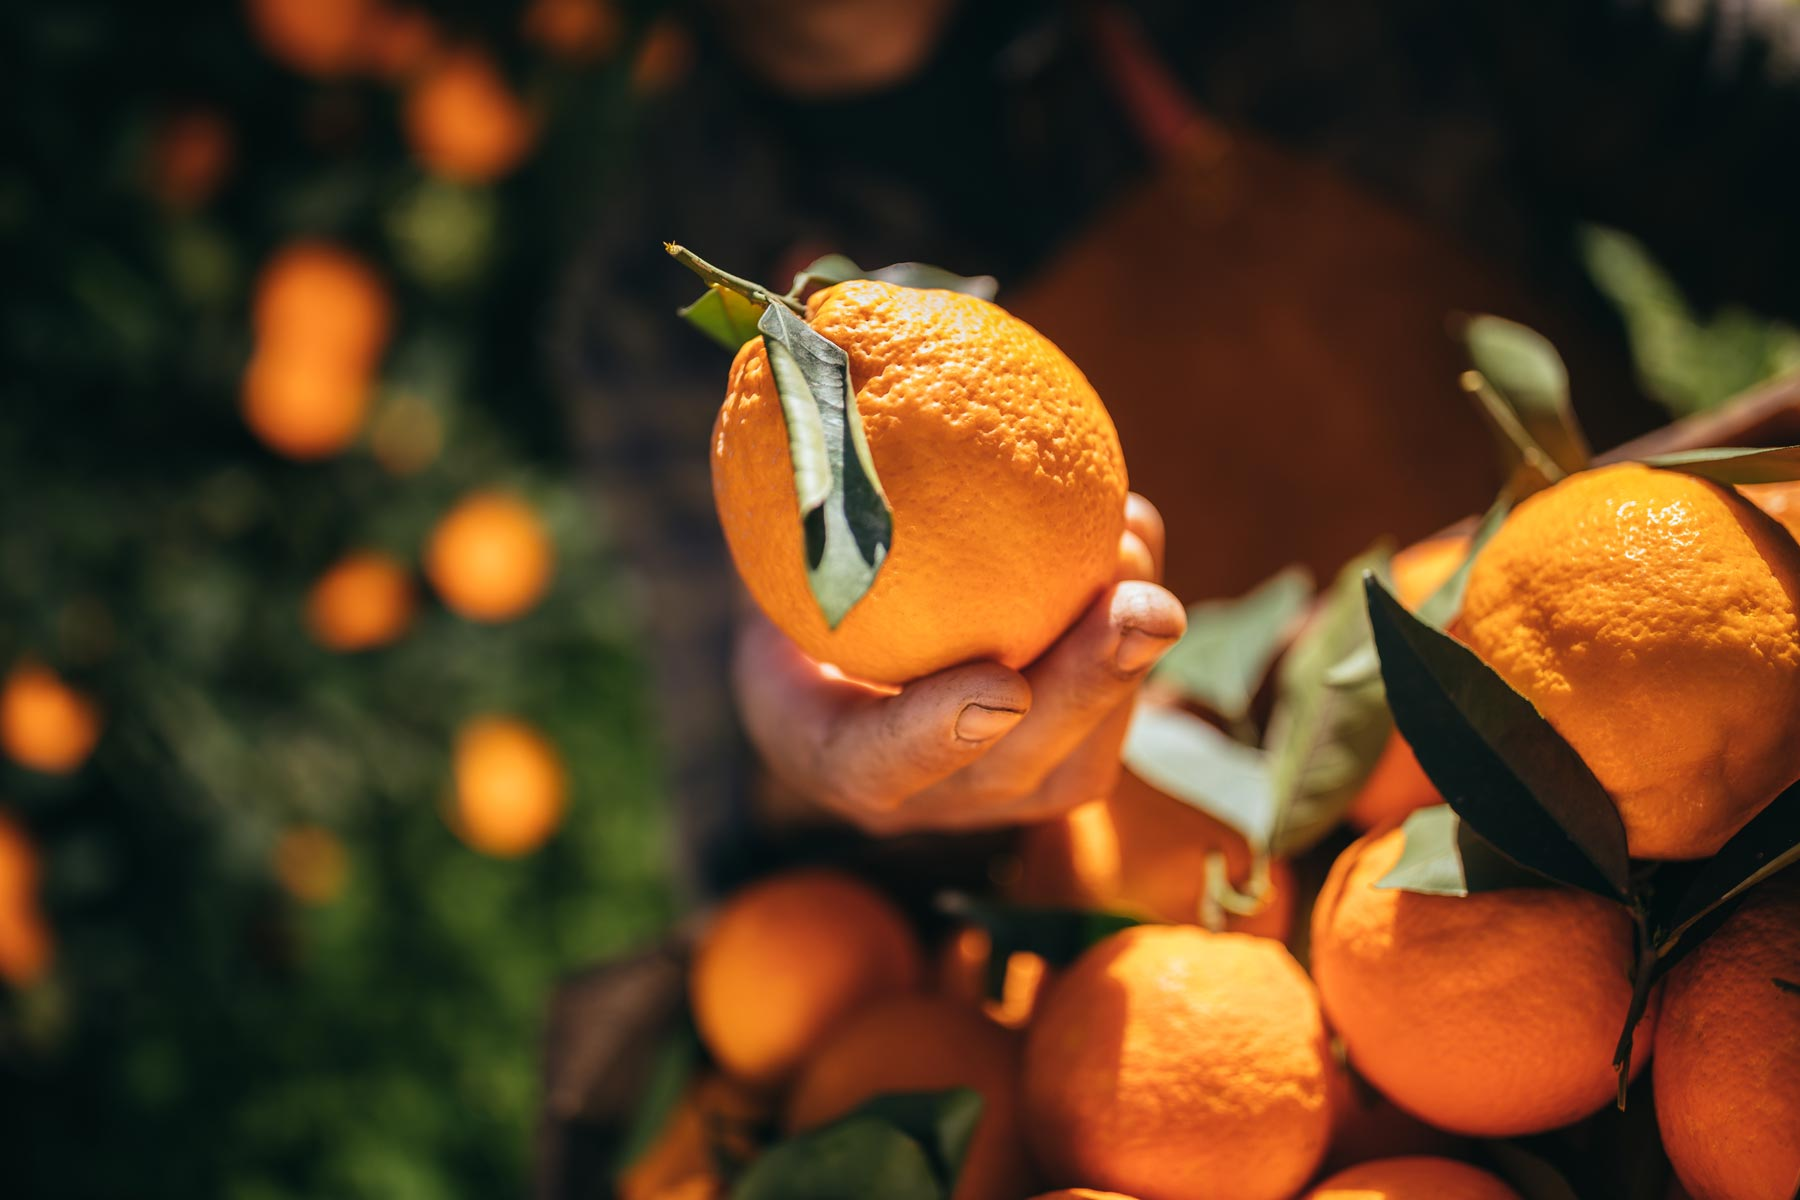 Hero image for The Hunky Dory World section of closeup of a mans hand holding a orange in an orange grove.